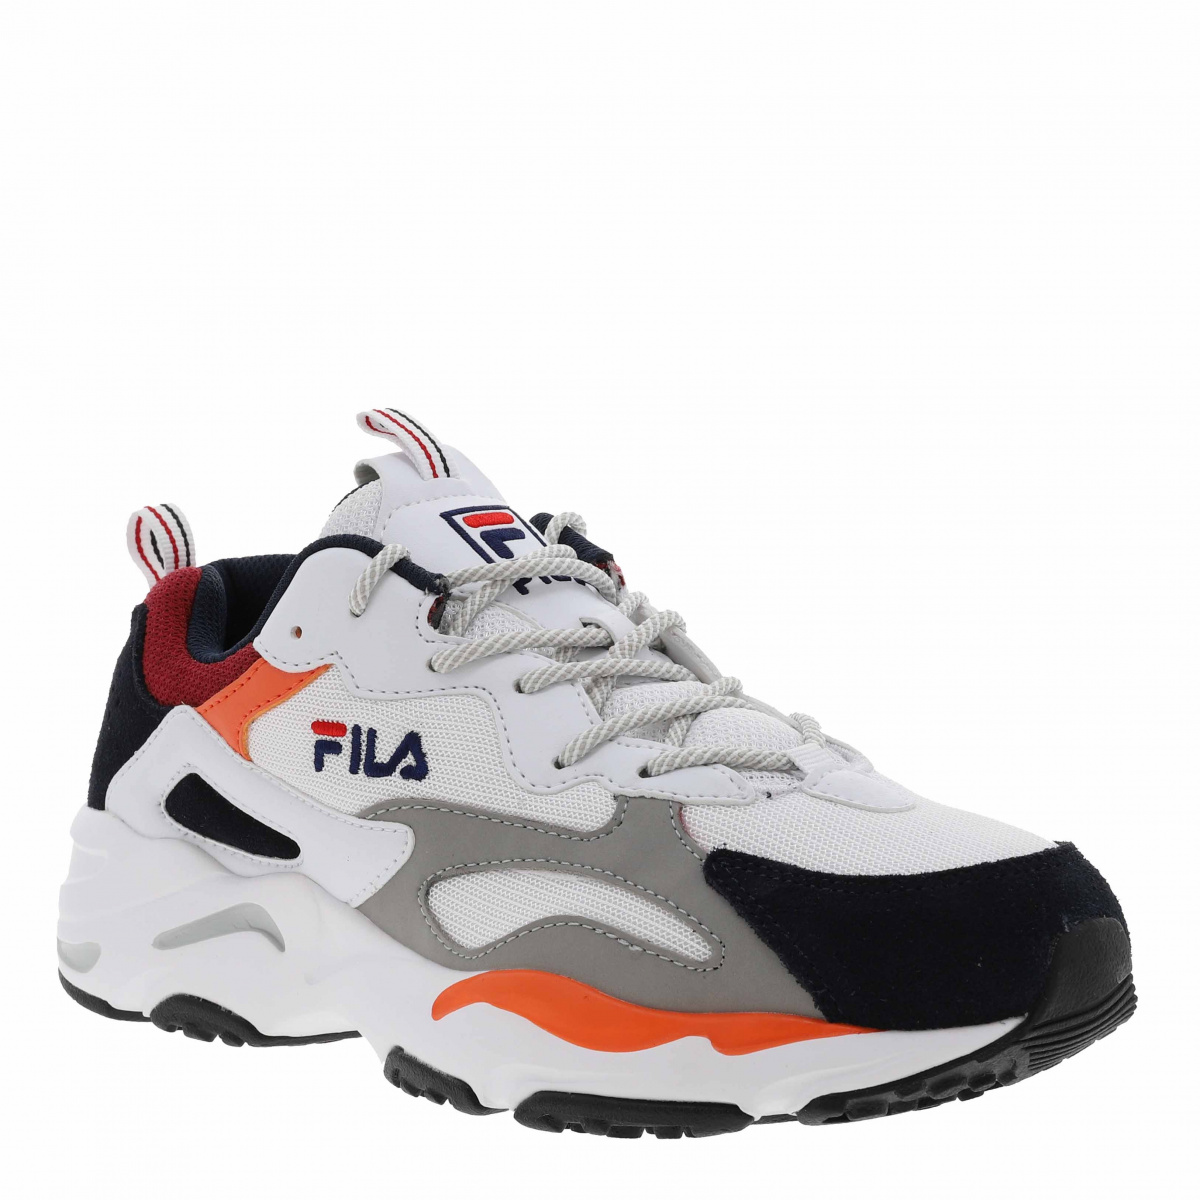 FILA Baskets RAY TRACER homme blanc